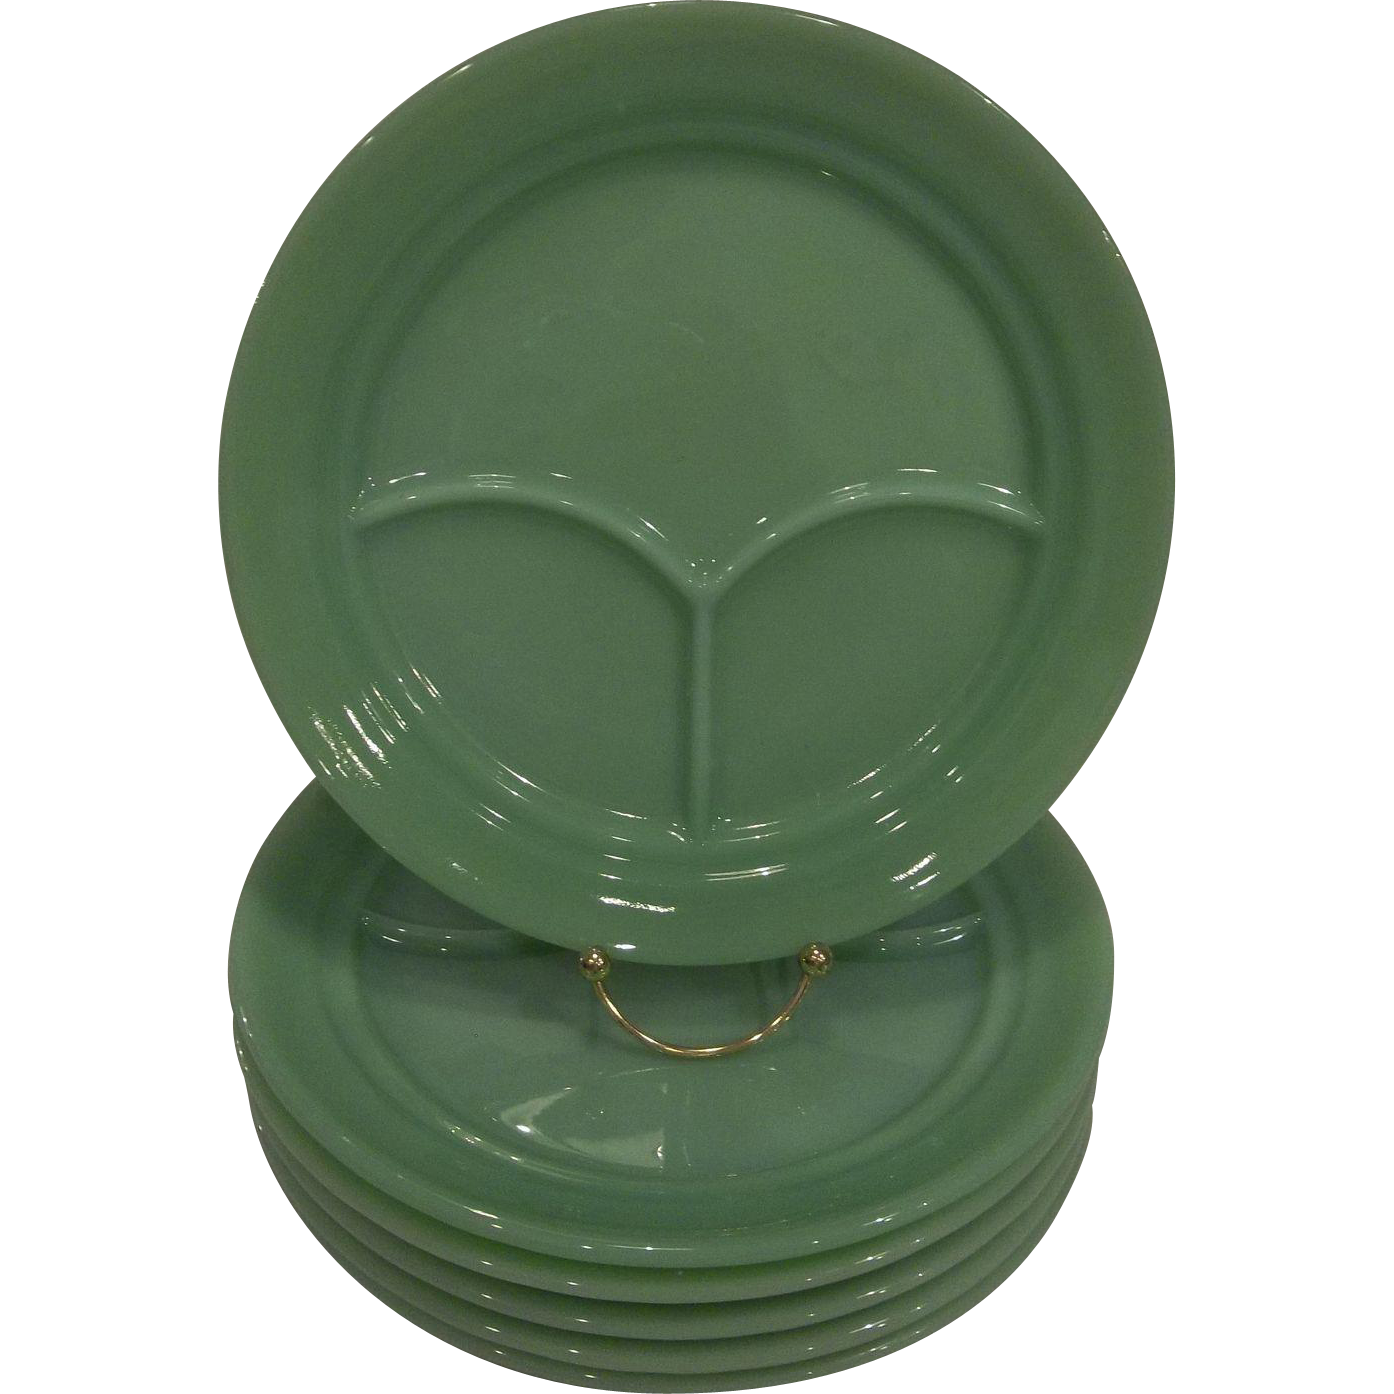 Fire King Jadeite Restaurant Ware Divided Grill Plate